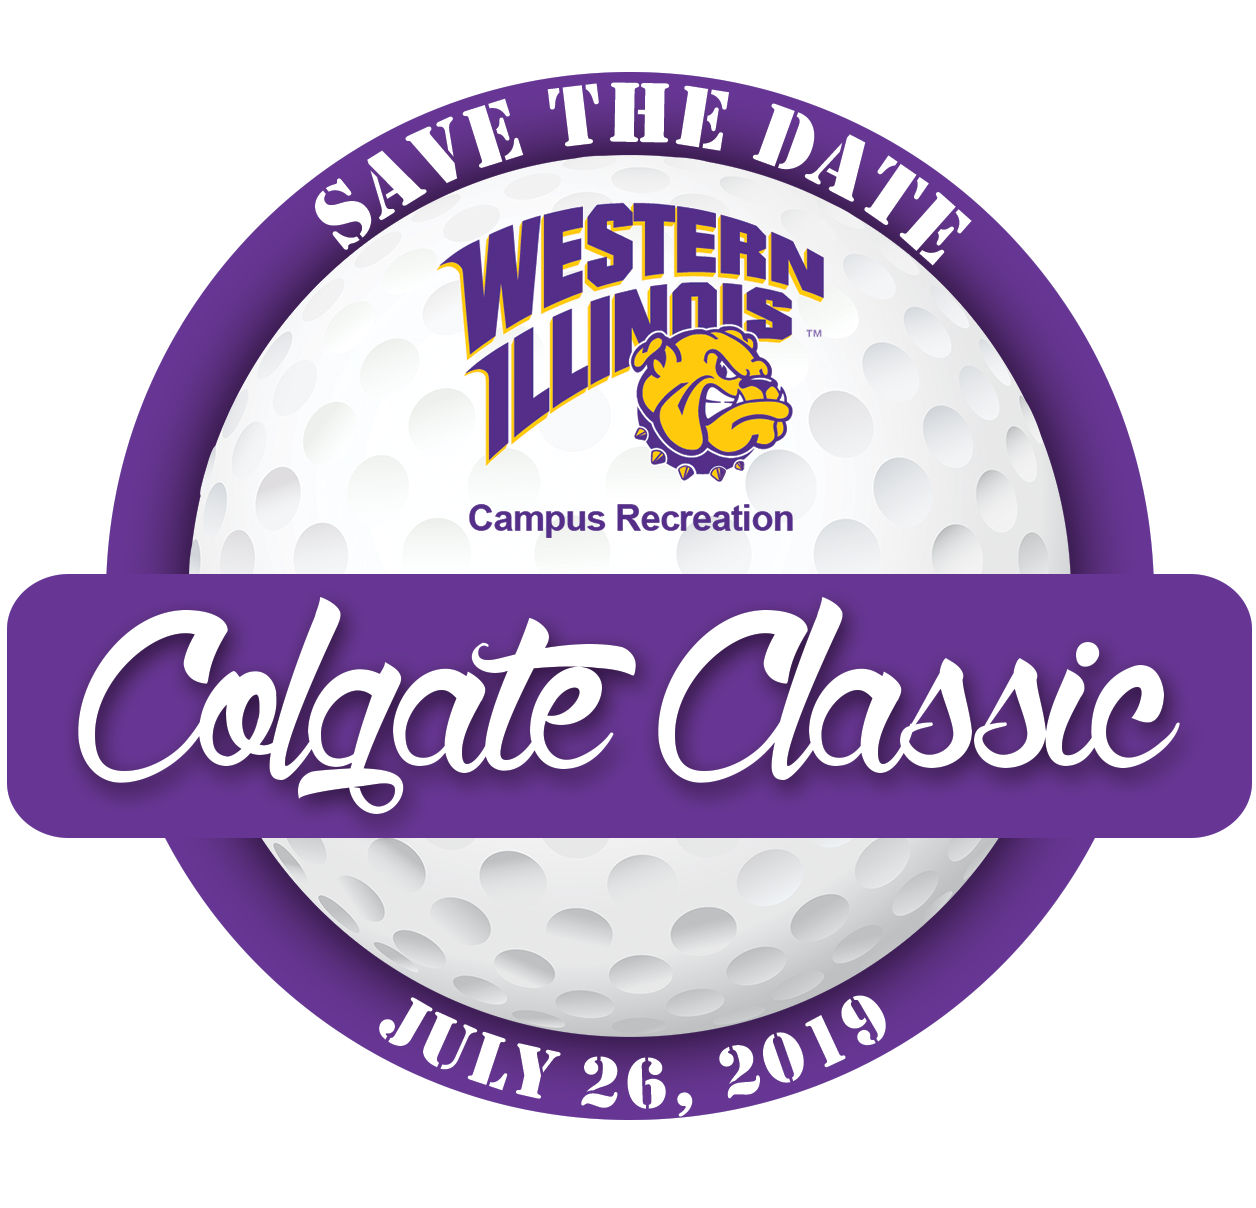 Colgate Classic Save the Date logo